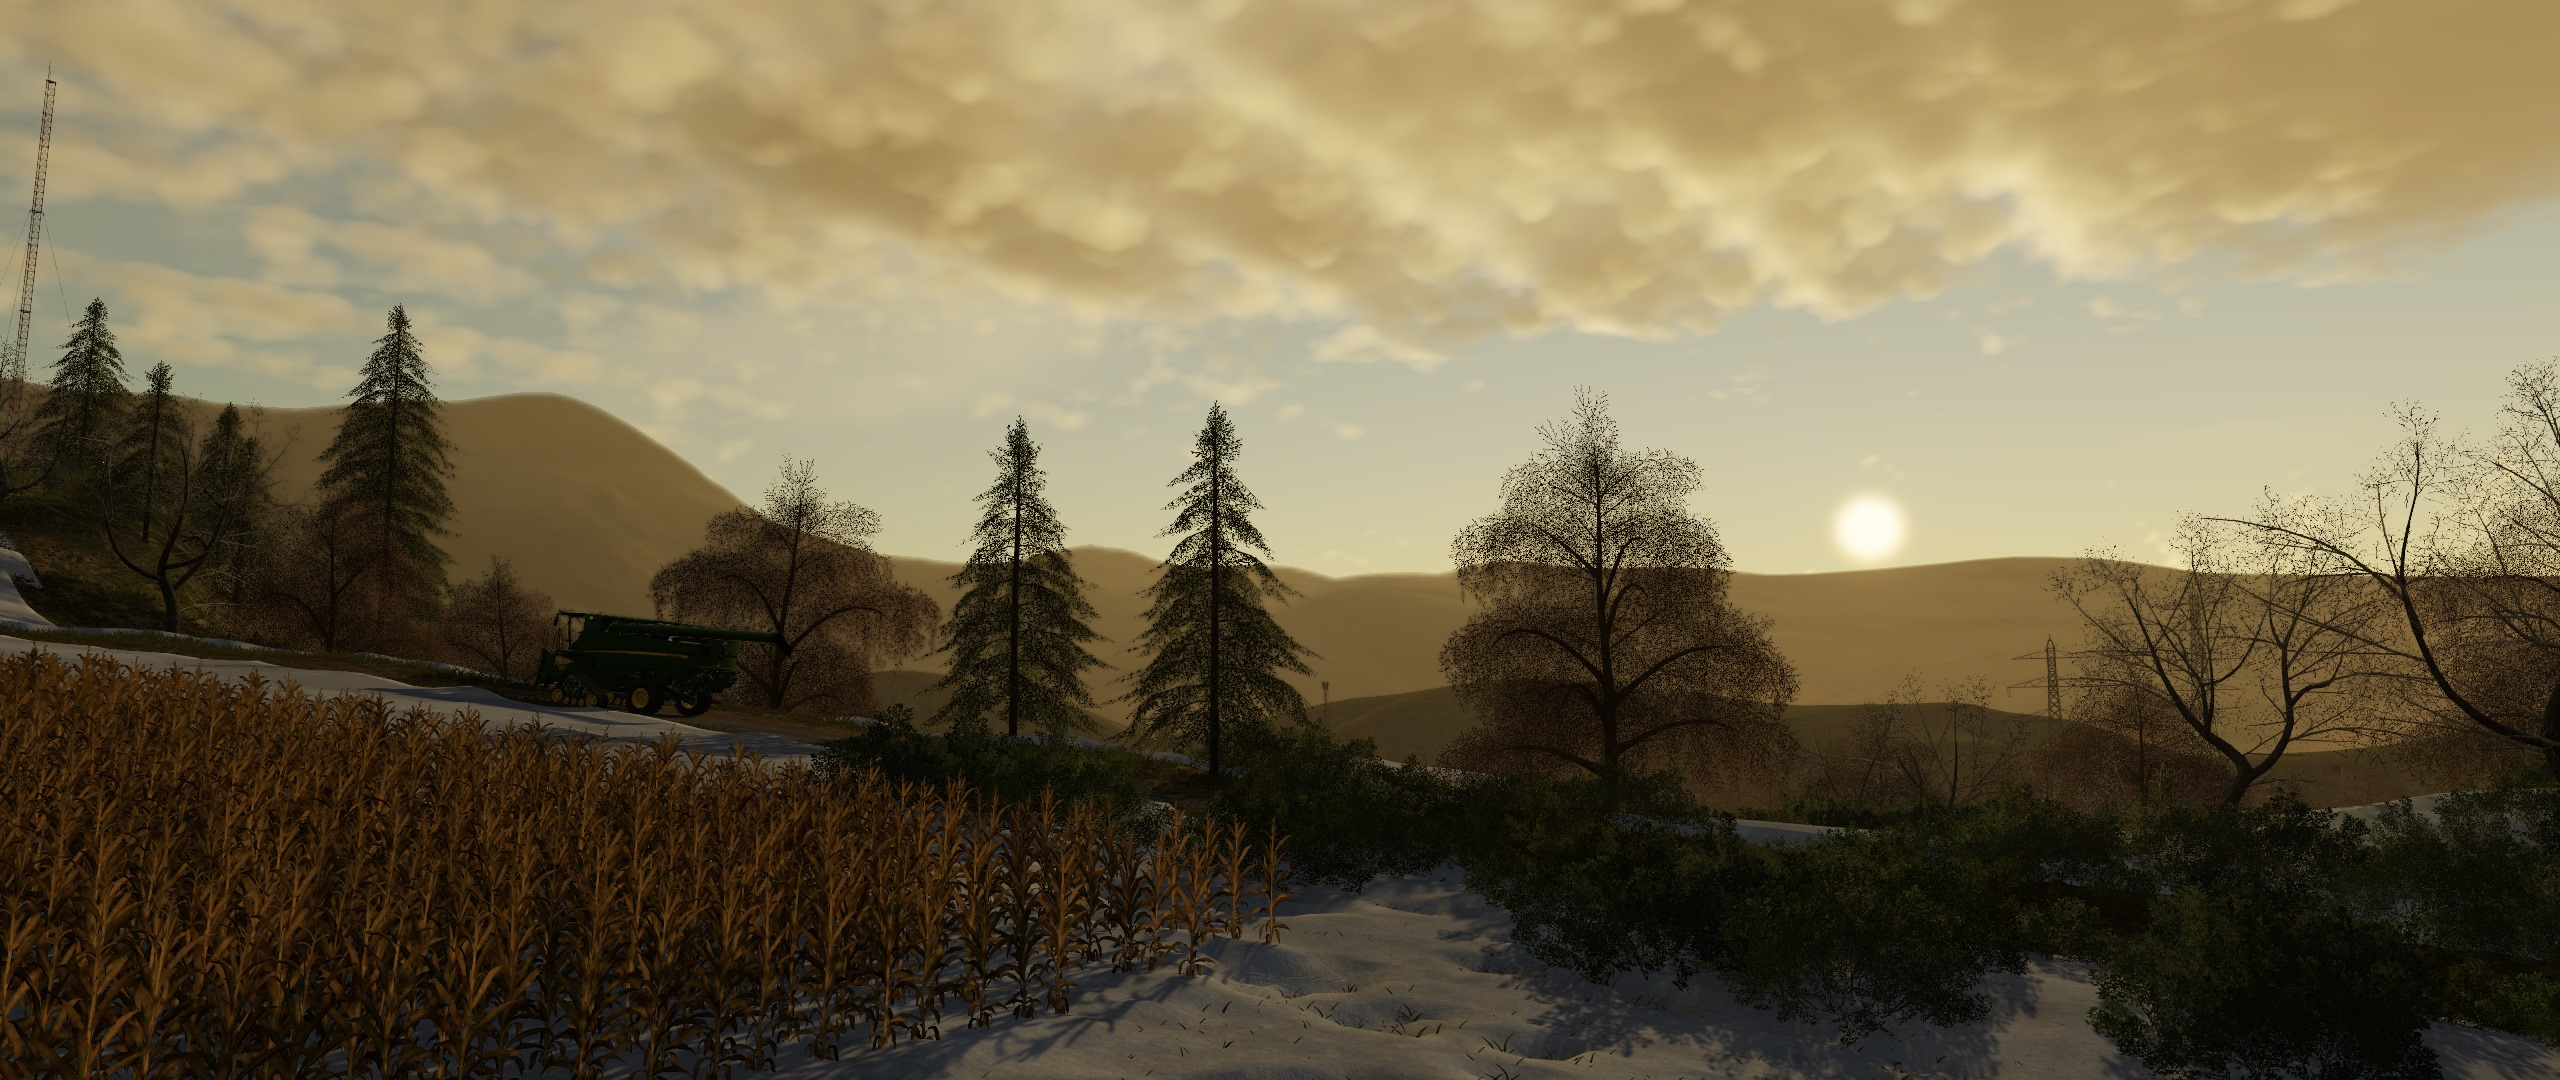 fs-19-seasons-19-mod-for-farming-simulator-19[1].jpg